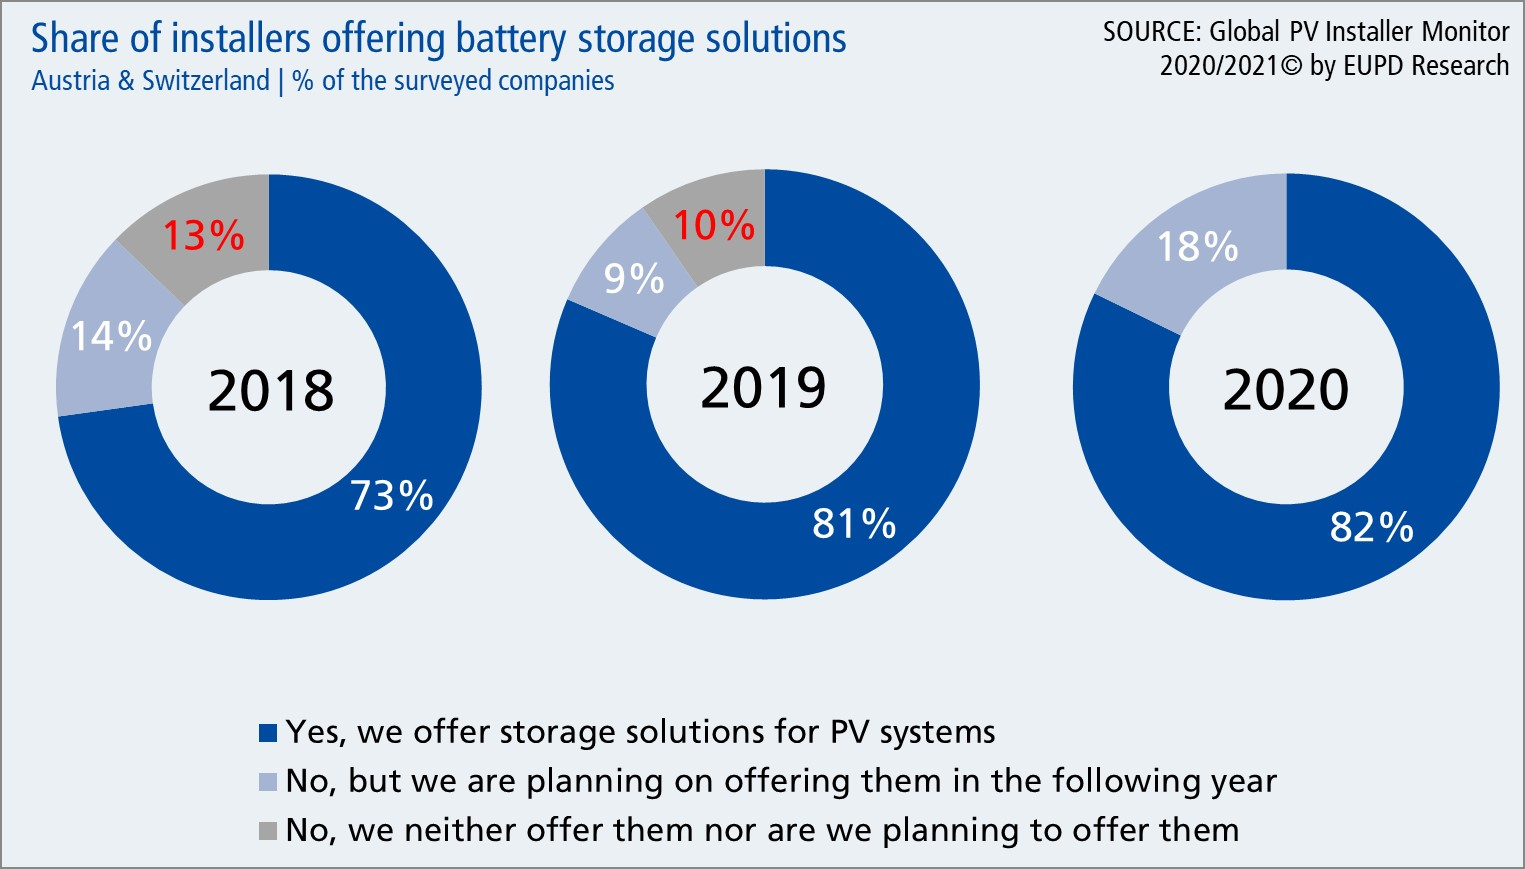 Share of installers offering storage solutions 2018, 2019 and 2020